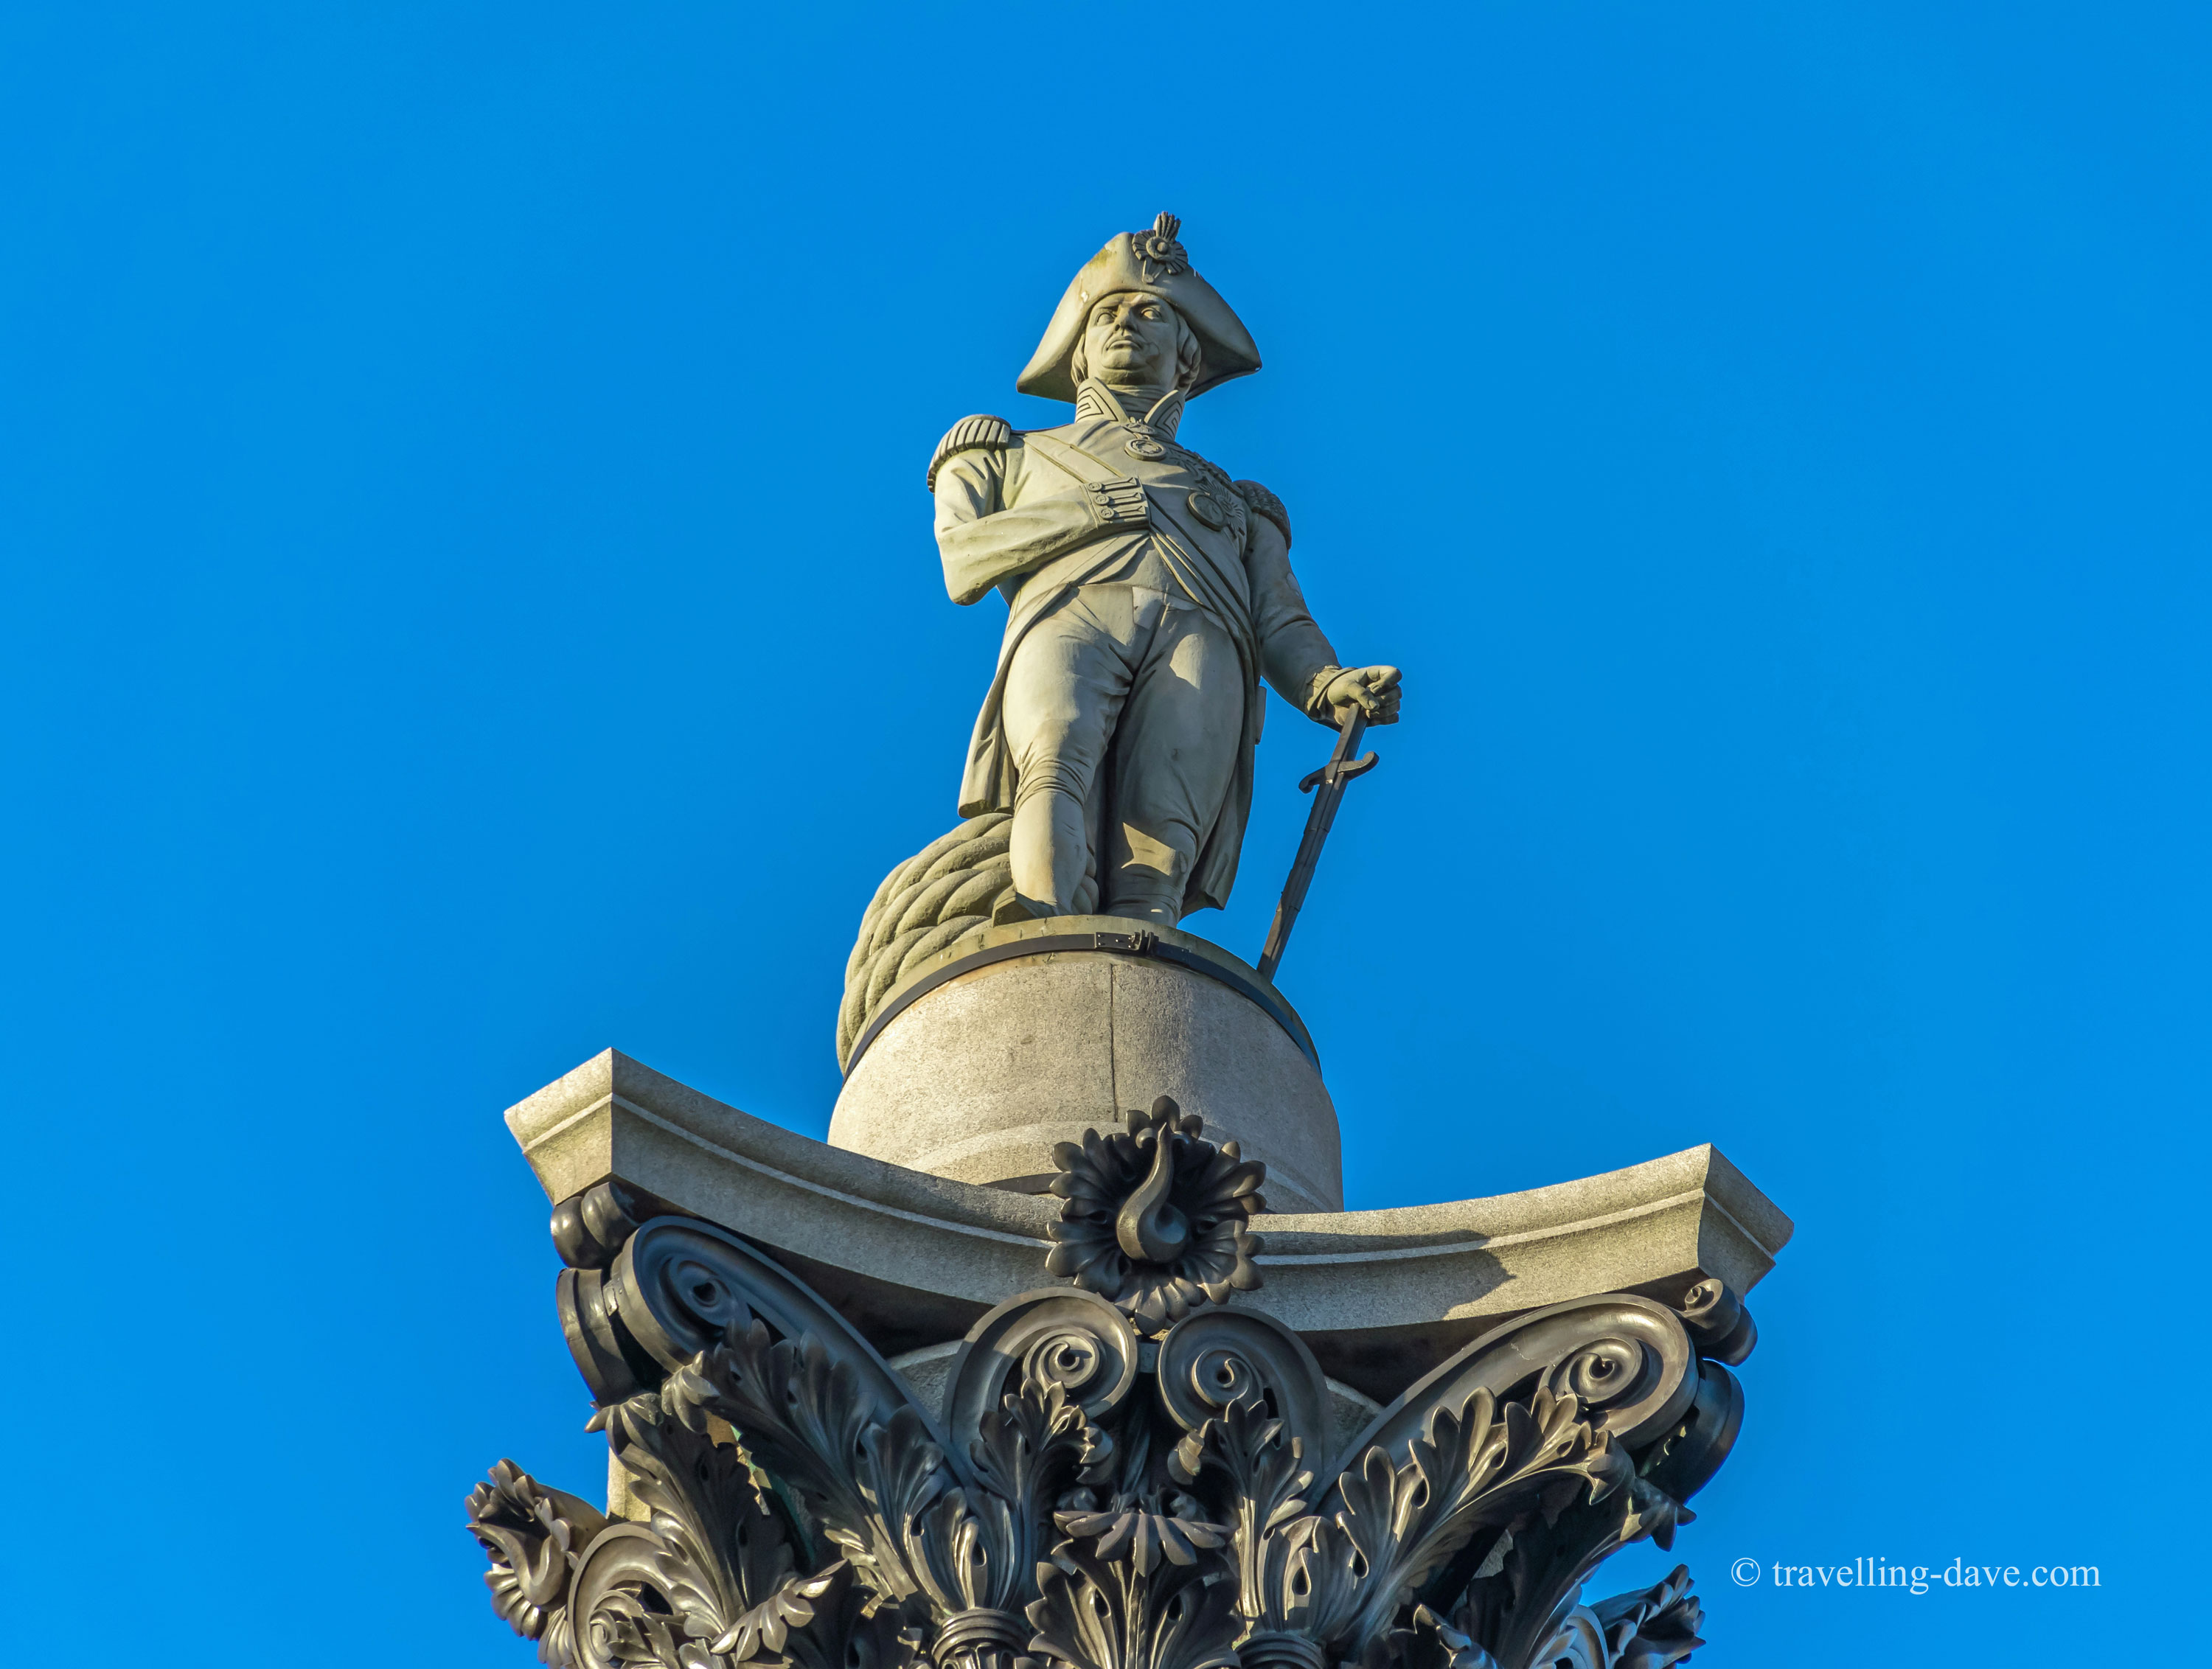 Statue of Admiral Nelson on top of Nelson's Column in London